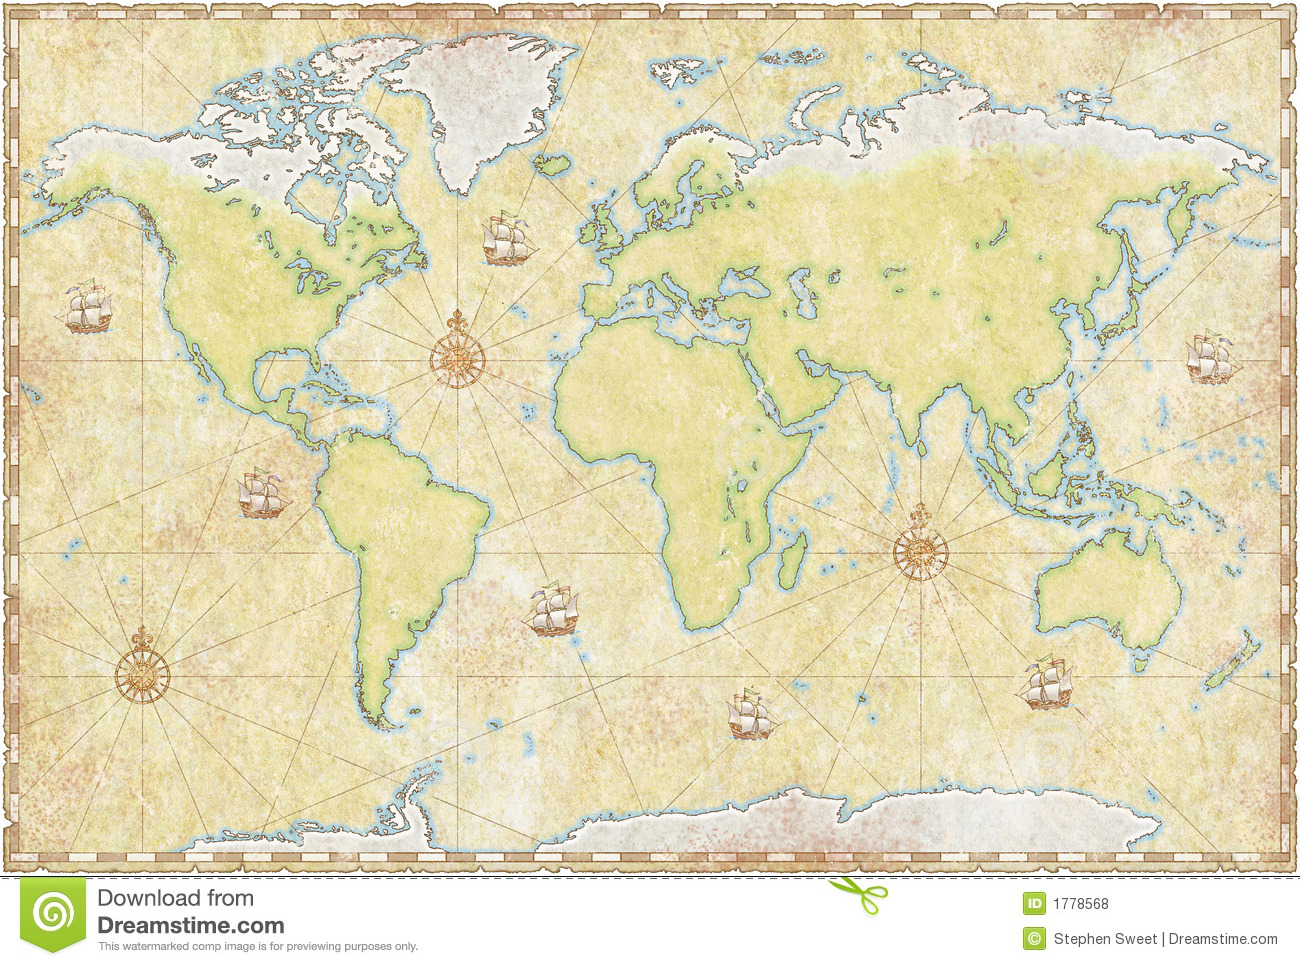 carte du monde sur le parchemin photos libres de droits image 1778568. Black Bedroom Furniture Sets. Home Design Ideas